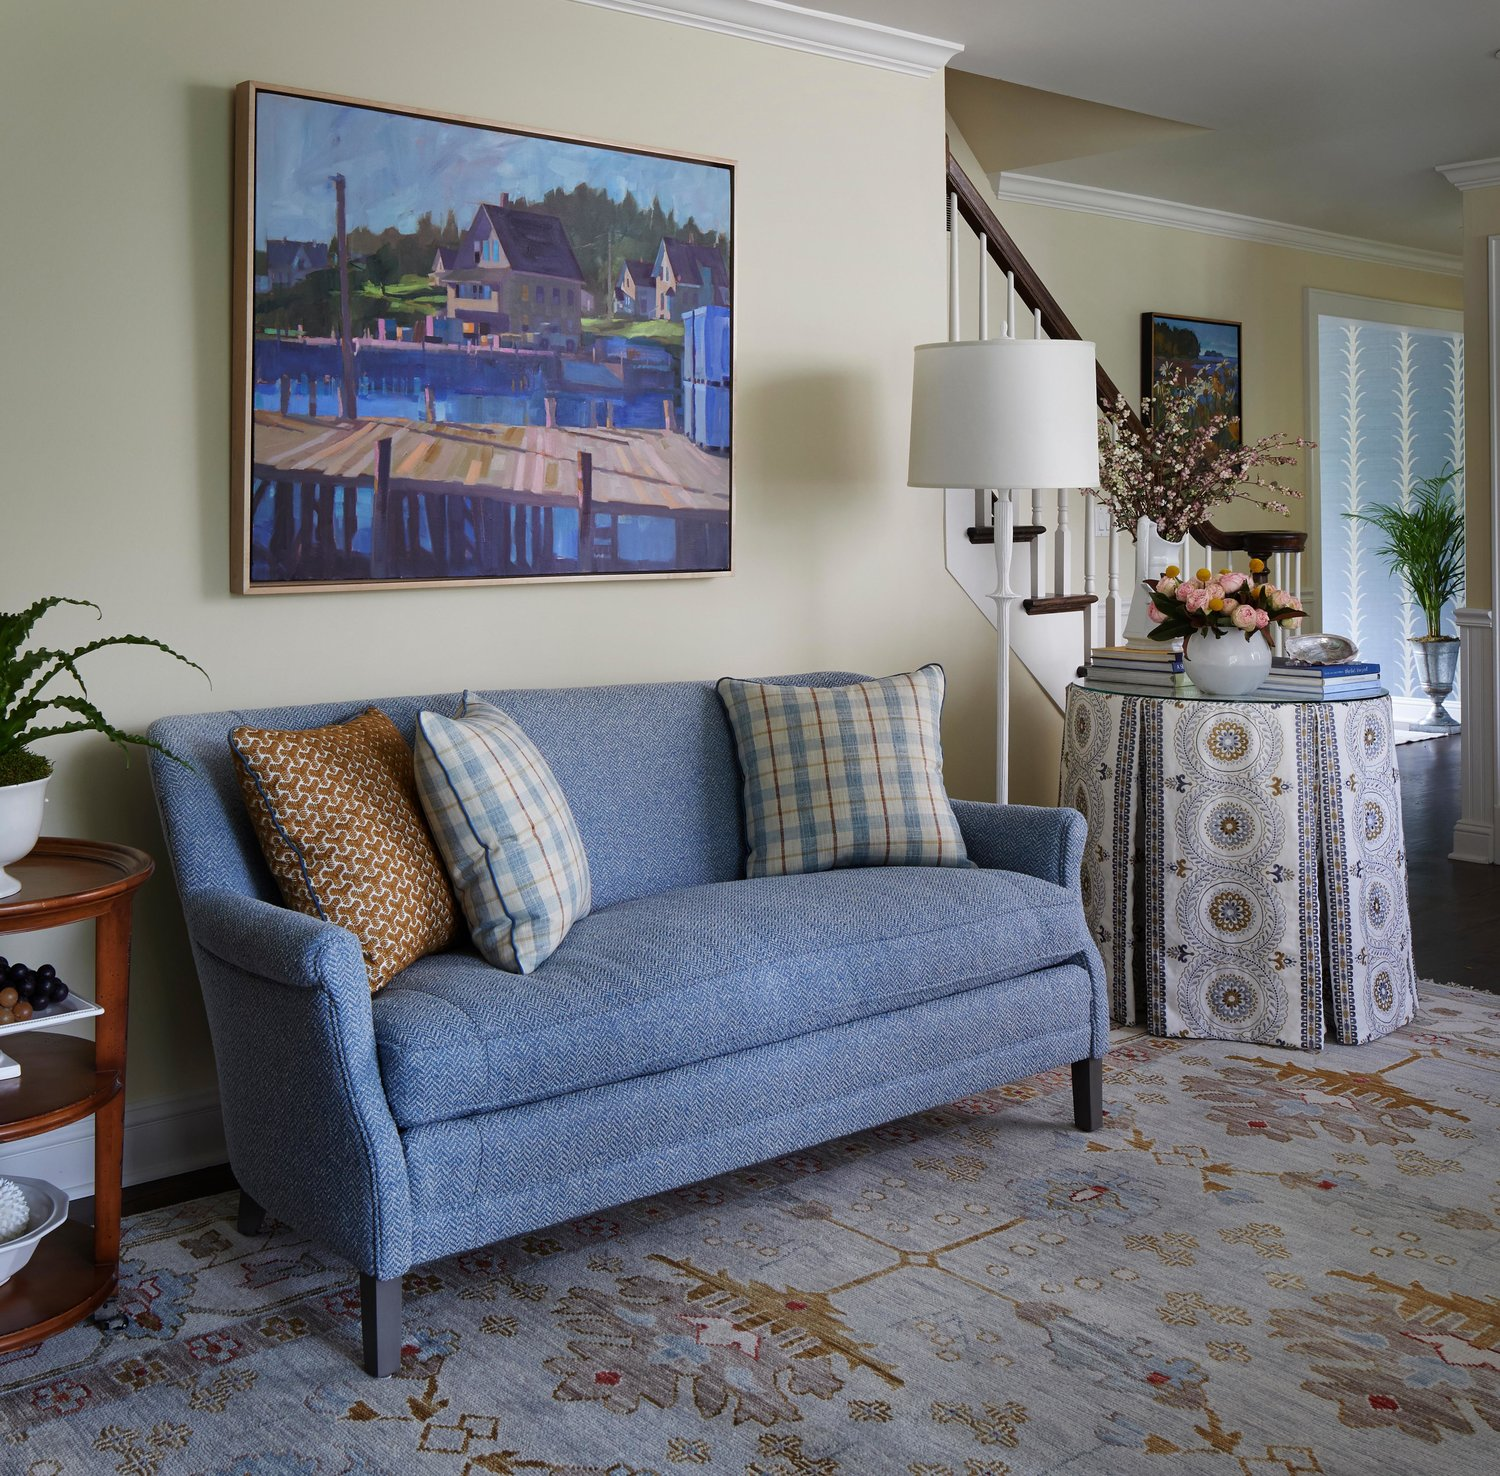 Traditional living room with blue loveseat. Come see more interior design inspiration from Elizabeth Drake. Photo by Werner Straube. #interiordesign #classicdesign #traditionaldecor #housetour #elizabethdrake